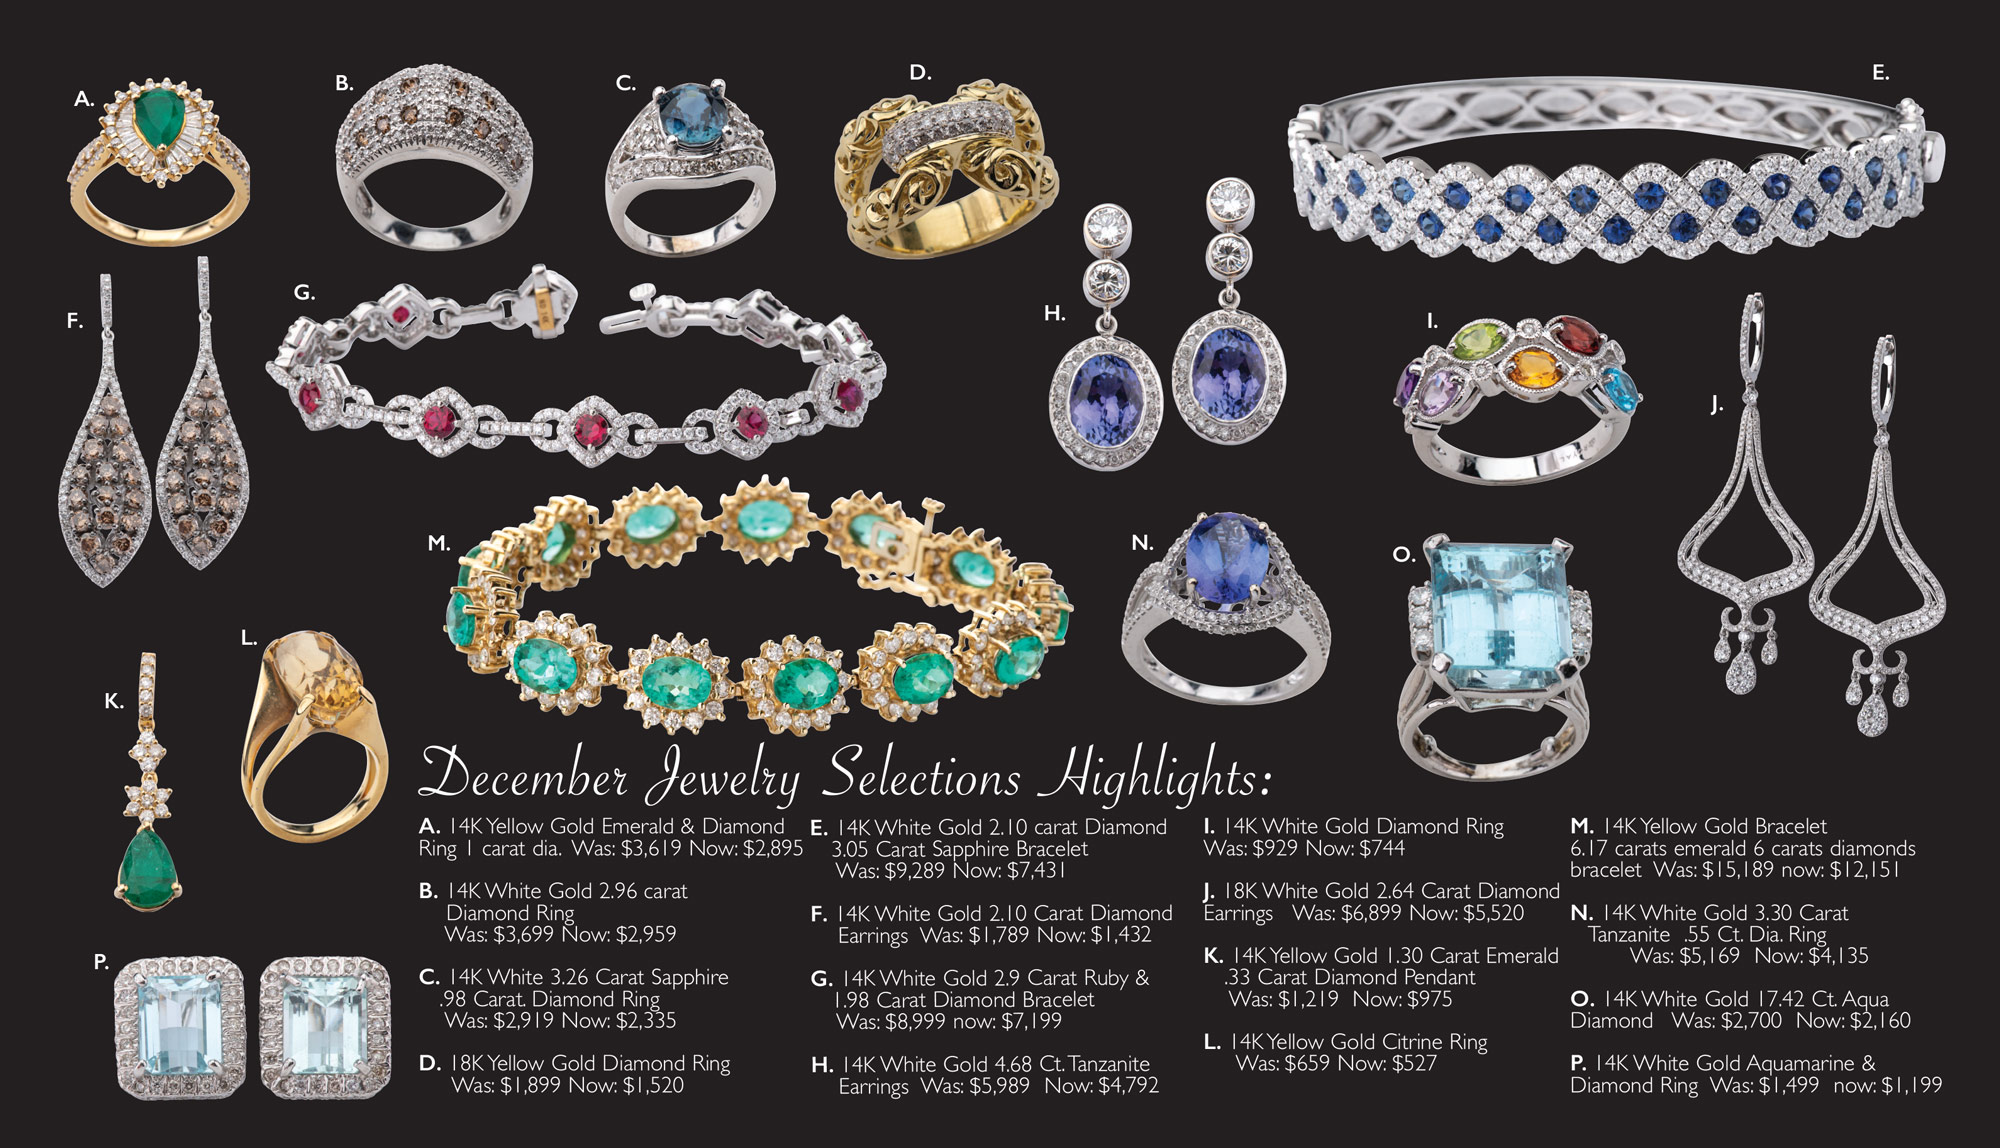 December Jewelry Sale Page 2